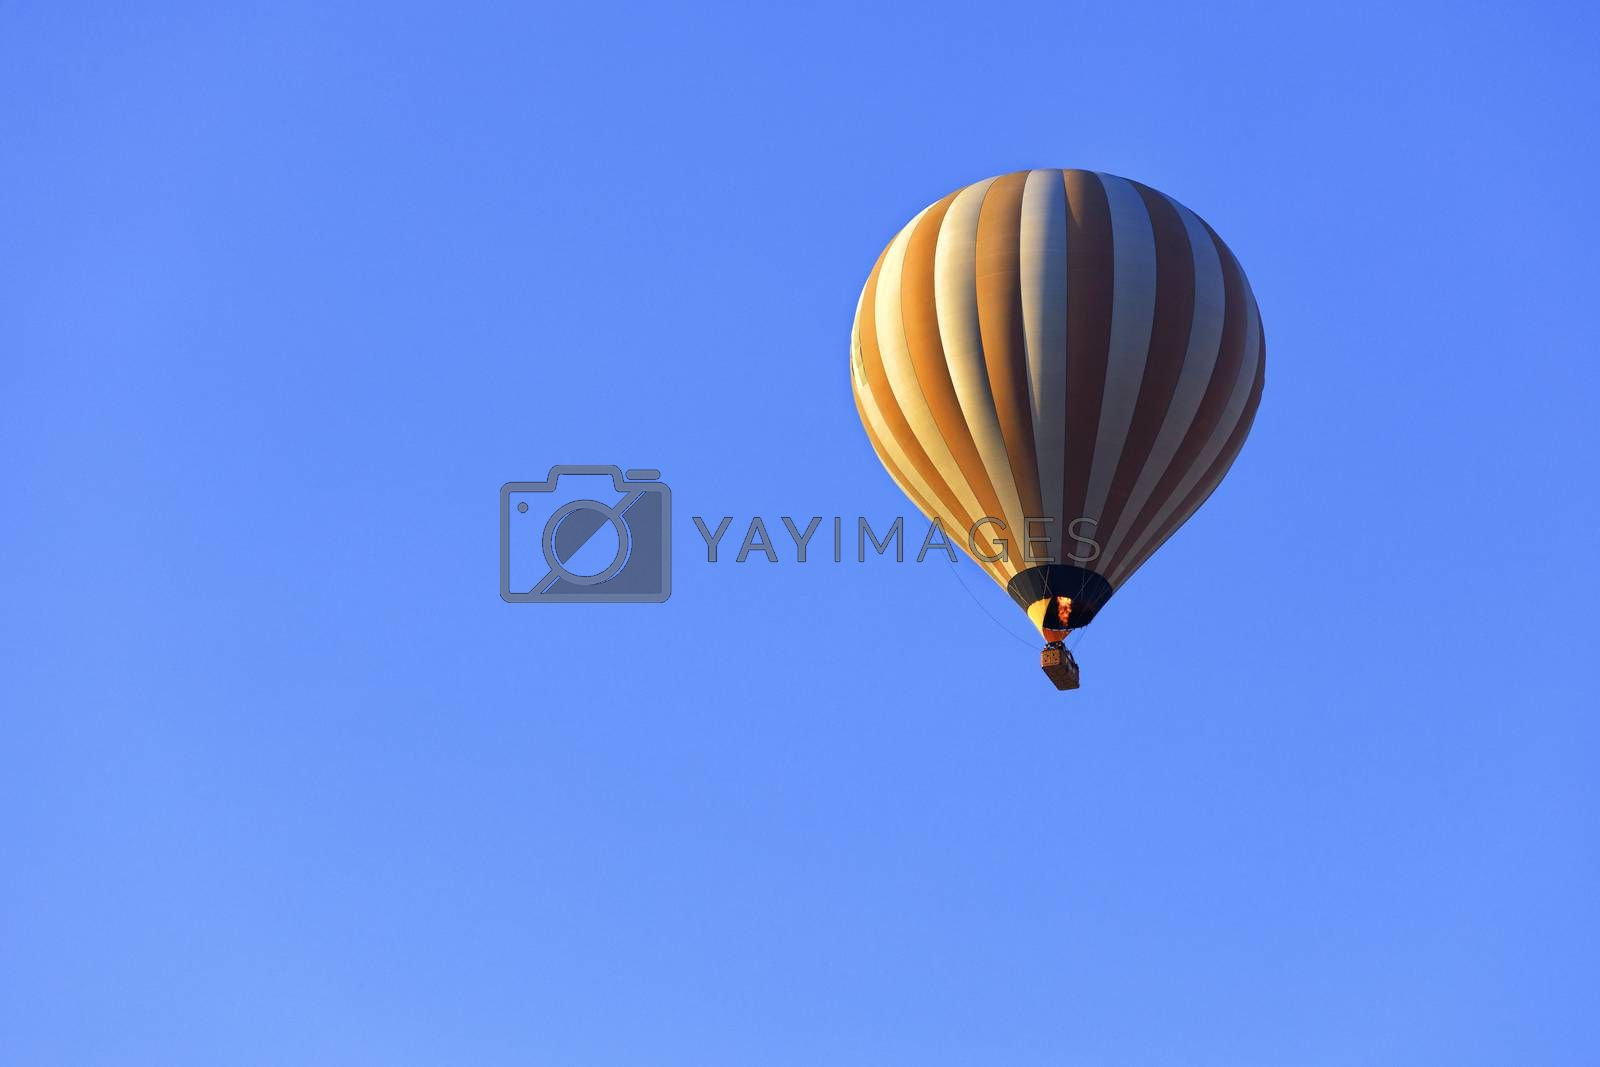 The flame of fire heats the air in a motley yellow-white beautiful balloon and raises a basket of tourists to the blue sky.